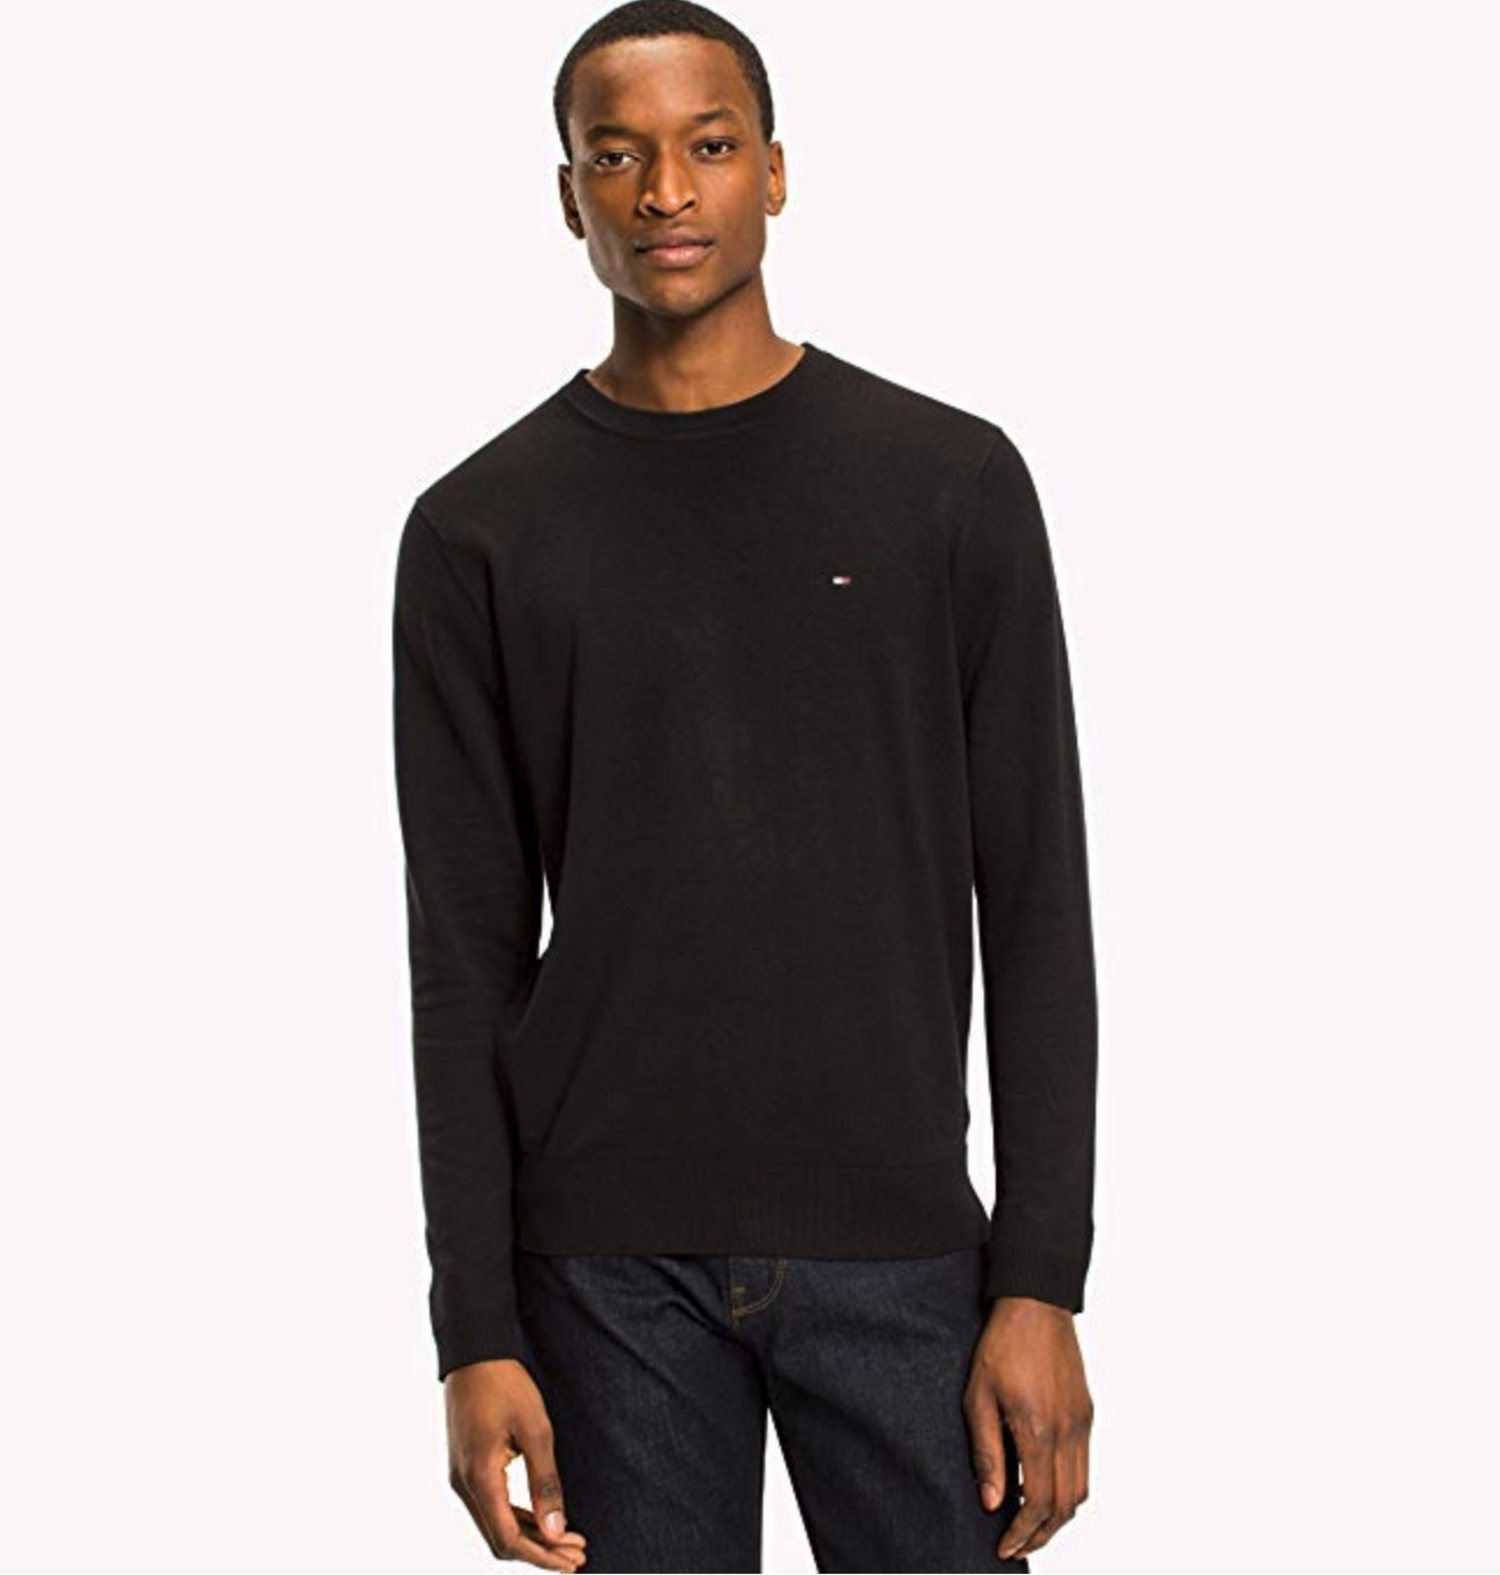 Sweater Tommy Hilfiger negro.